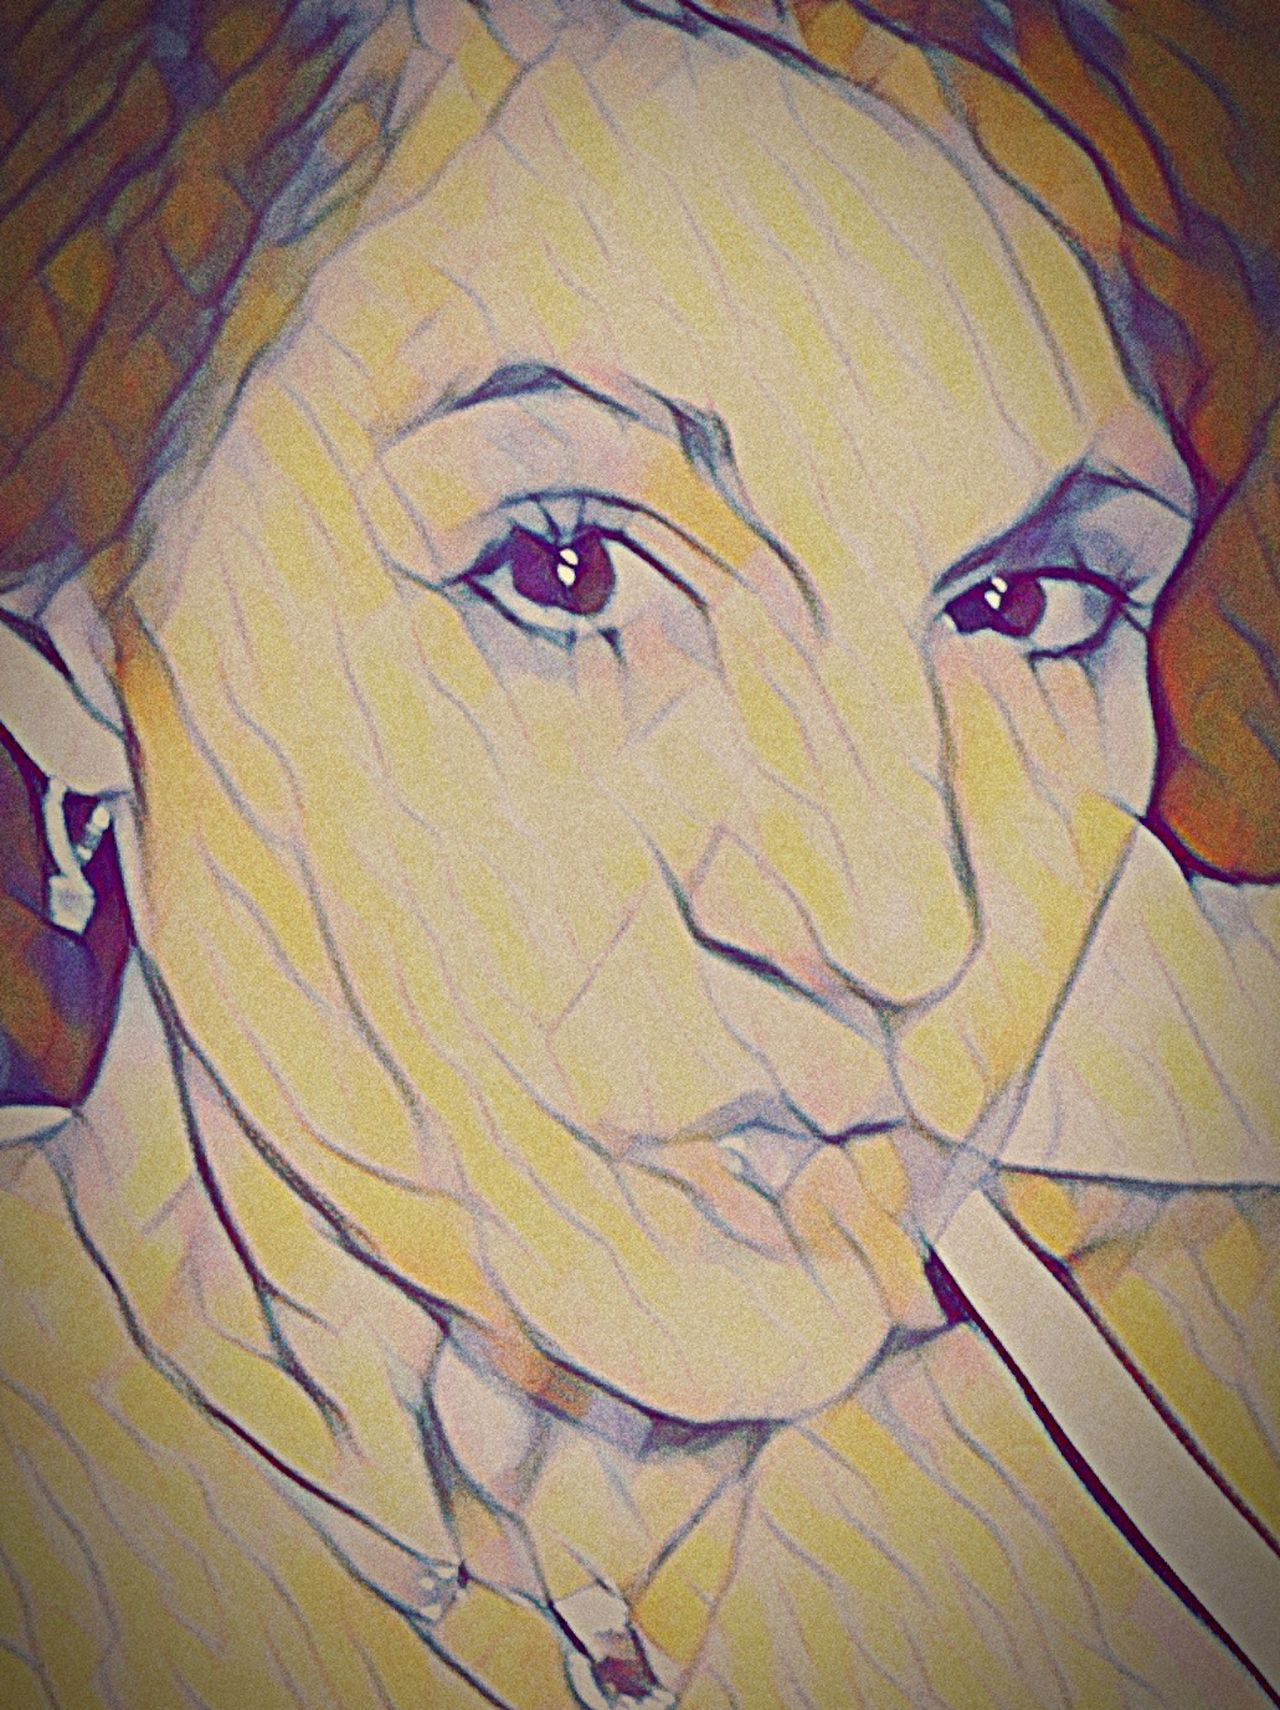 Ancient Close-up No People Indoors  Day Sefie♡ Selfportrait Selfie ✌ Self Multi Colored Self Portrait Around The World Beautiful Woman Human Eye People Human Face Adult Looking At Camera Young Women Abstract Pattern Self Portrait Experiments Selfieoftheday Self Portrait Selfietime Selfienation